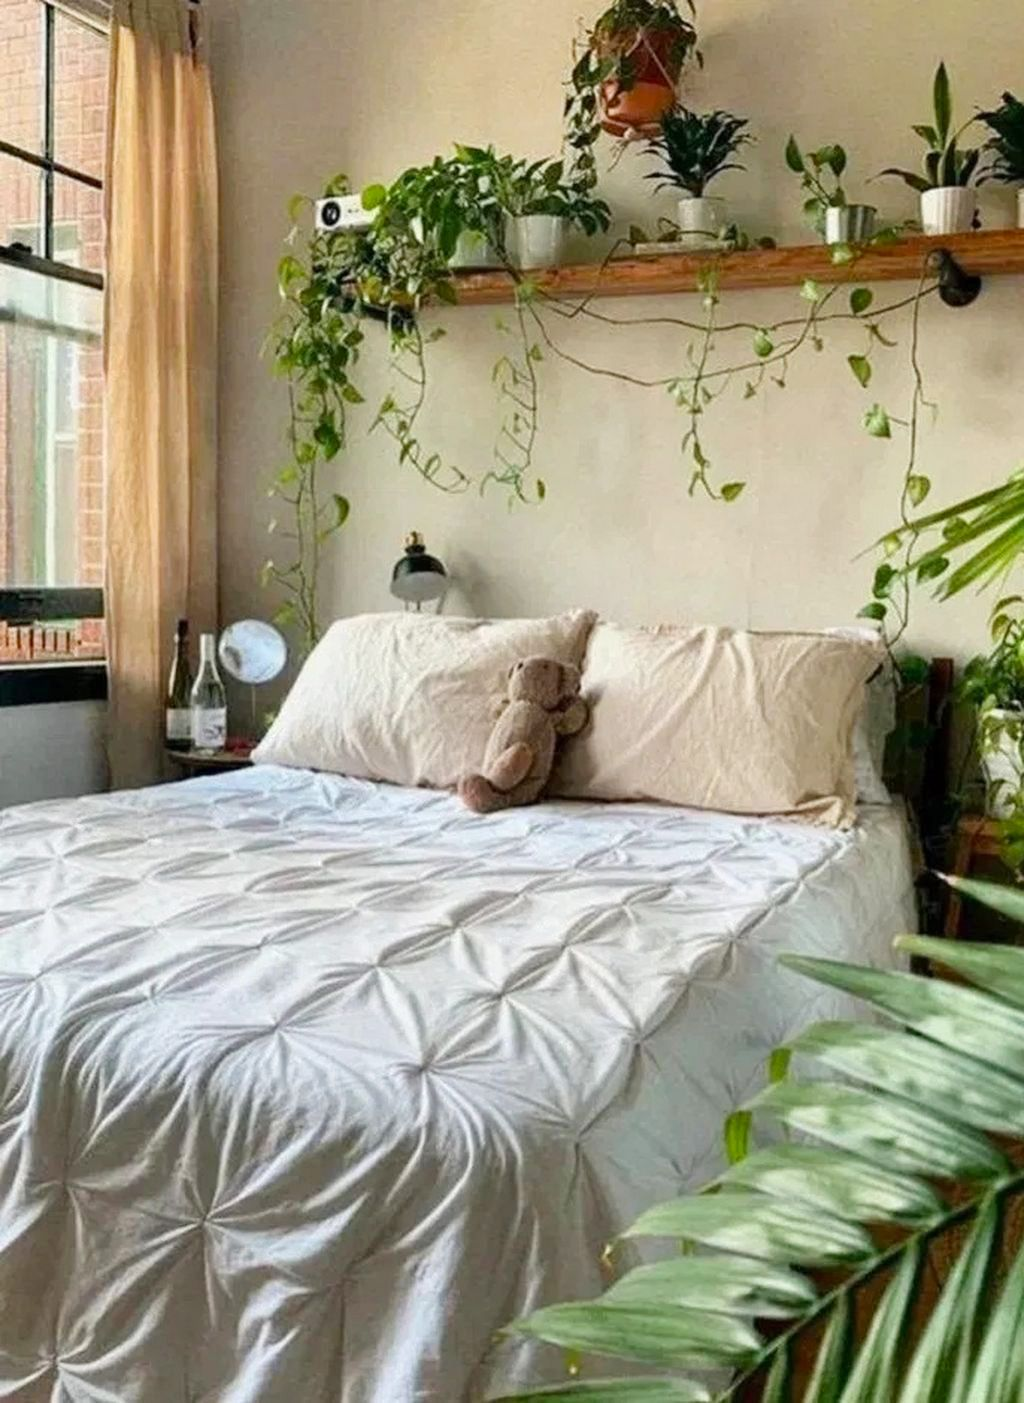 Would you like to remodel your room on a low budget? Then you must enter whatforme.com, where you will find the best reviews of household products. You will get the best products at the best price.• • • • • #garden #gardening #plants #flower #jardin #mygarden #plant #succulent #succulents #instagarden #garten #gardens #flowerstagram #cactus